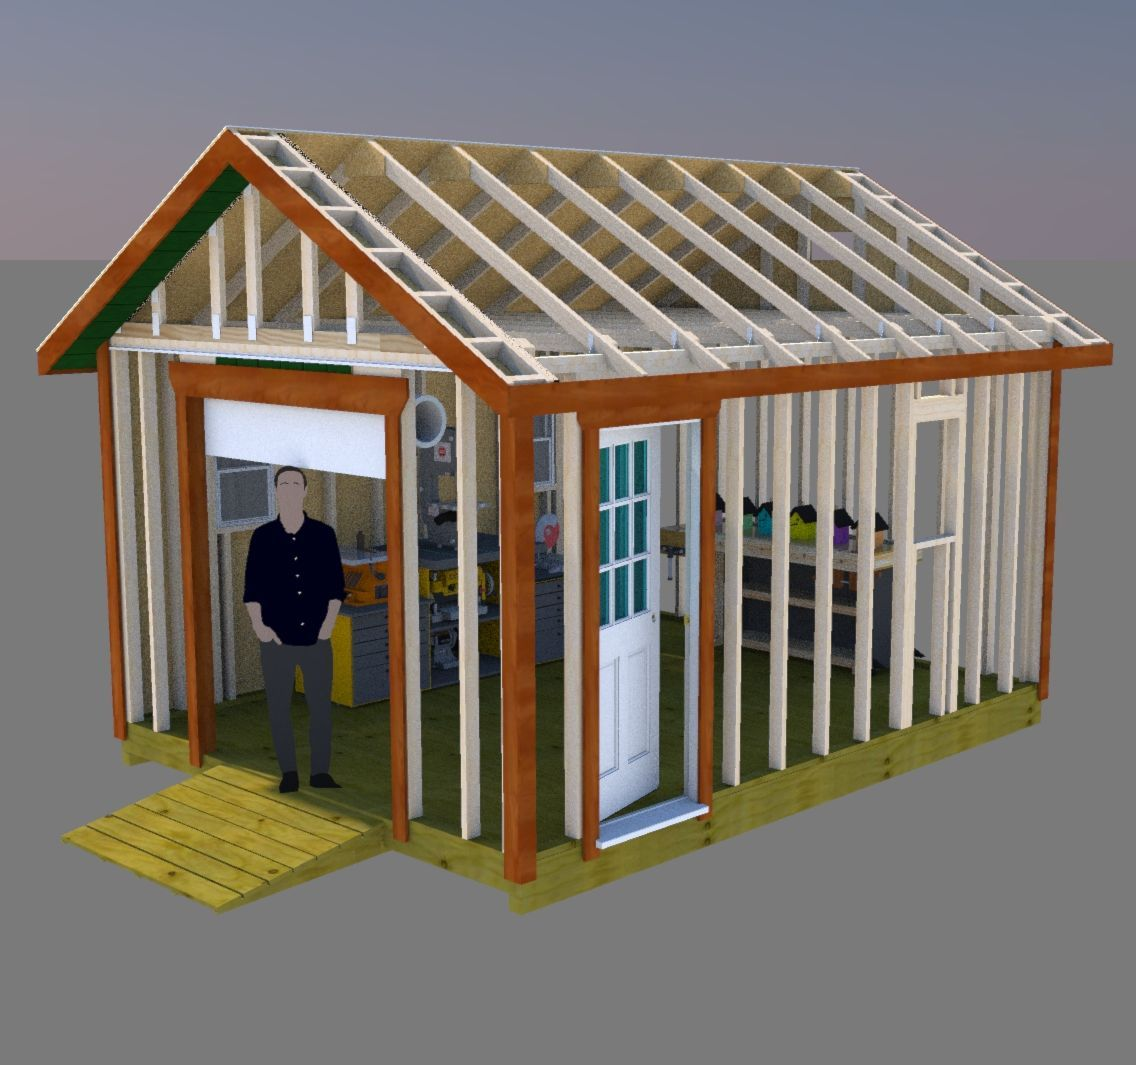 12x16 Gable Storage Shed Plans With Roll Up Shed Door Diy Shed Plans Shed Doors Building A Shed